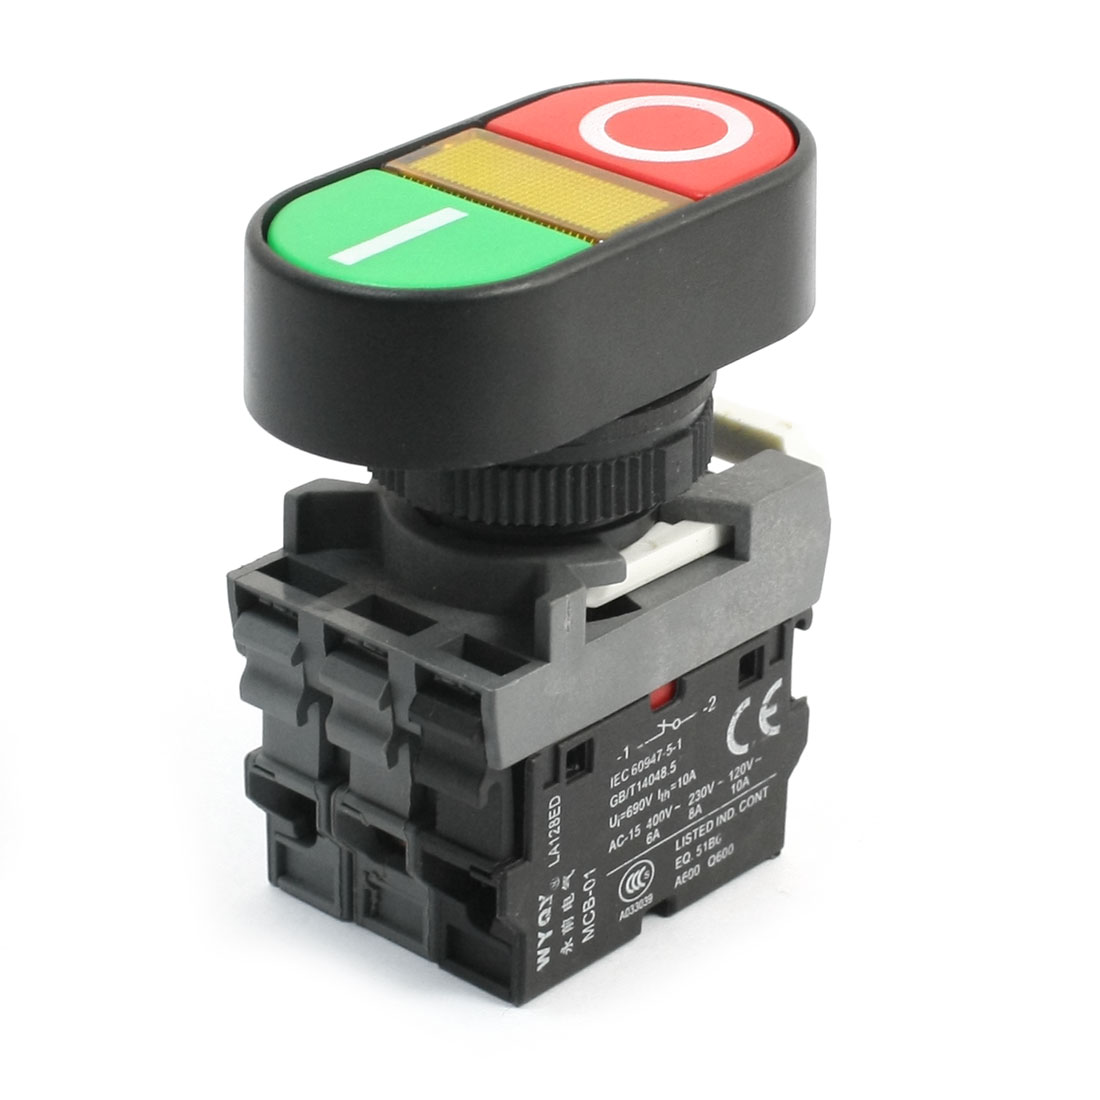 ON OFF Control 1NO+1NC Yellow Light Momentary Pushbutton Switch 690V 15A